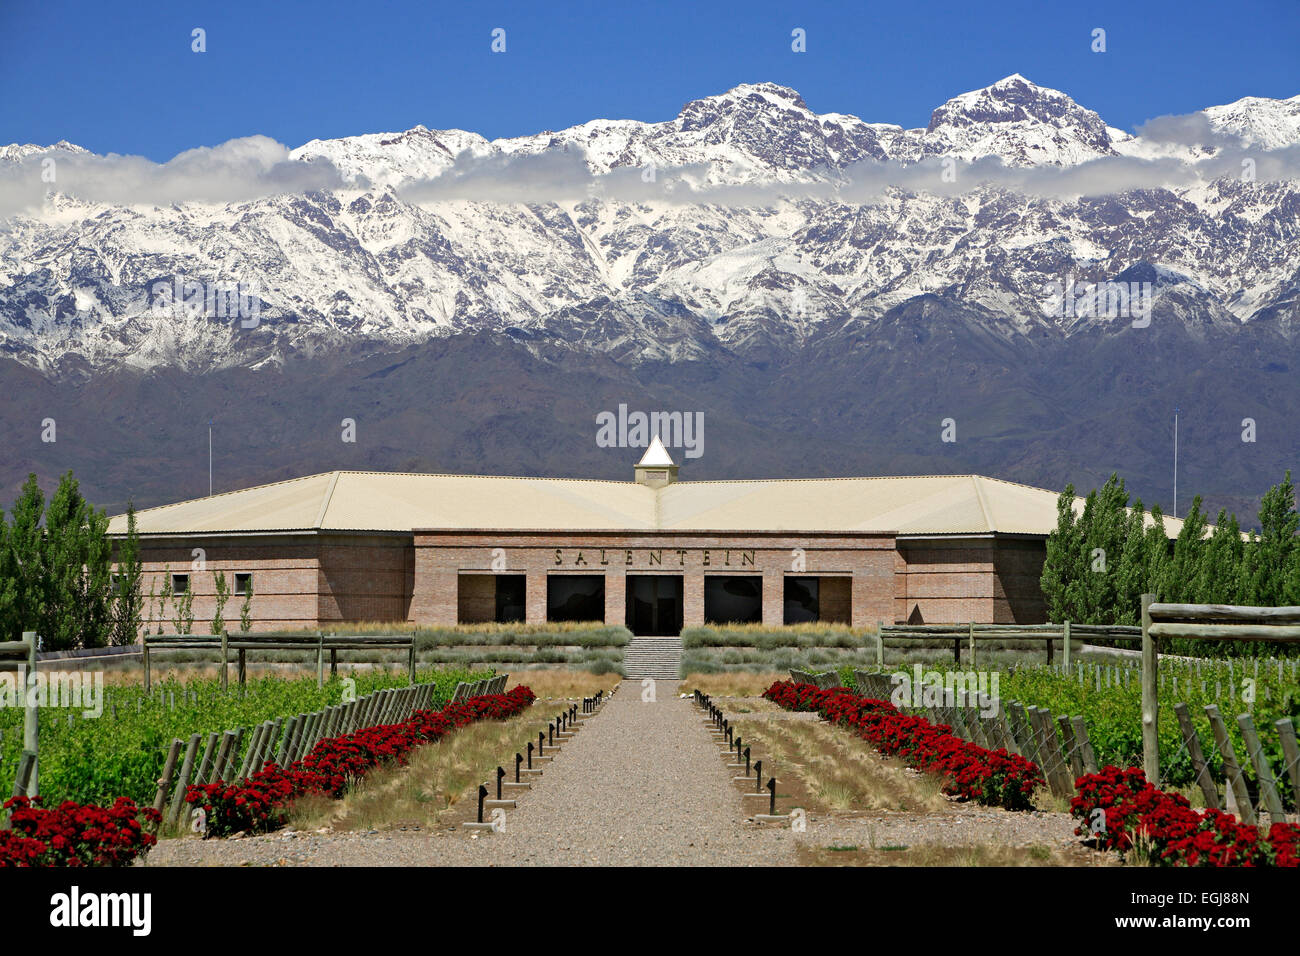 Vineyards, wine cellar and snow-covered Andes Mountains, Bodega Salentein (winery), Mendoza Province, Argentina - Stock Image